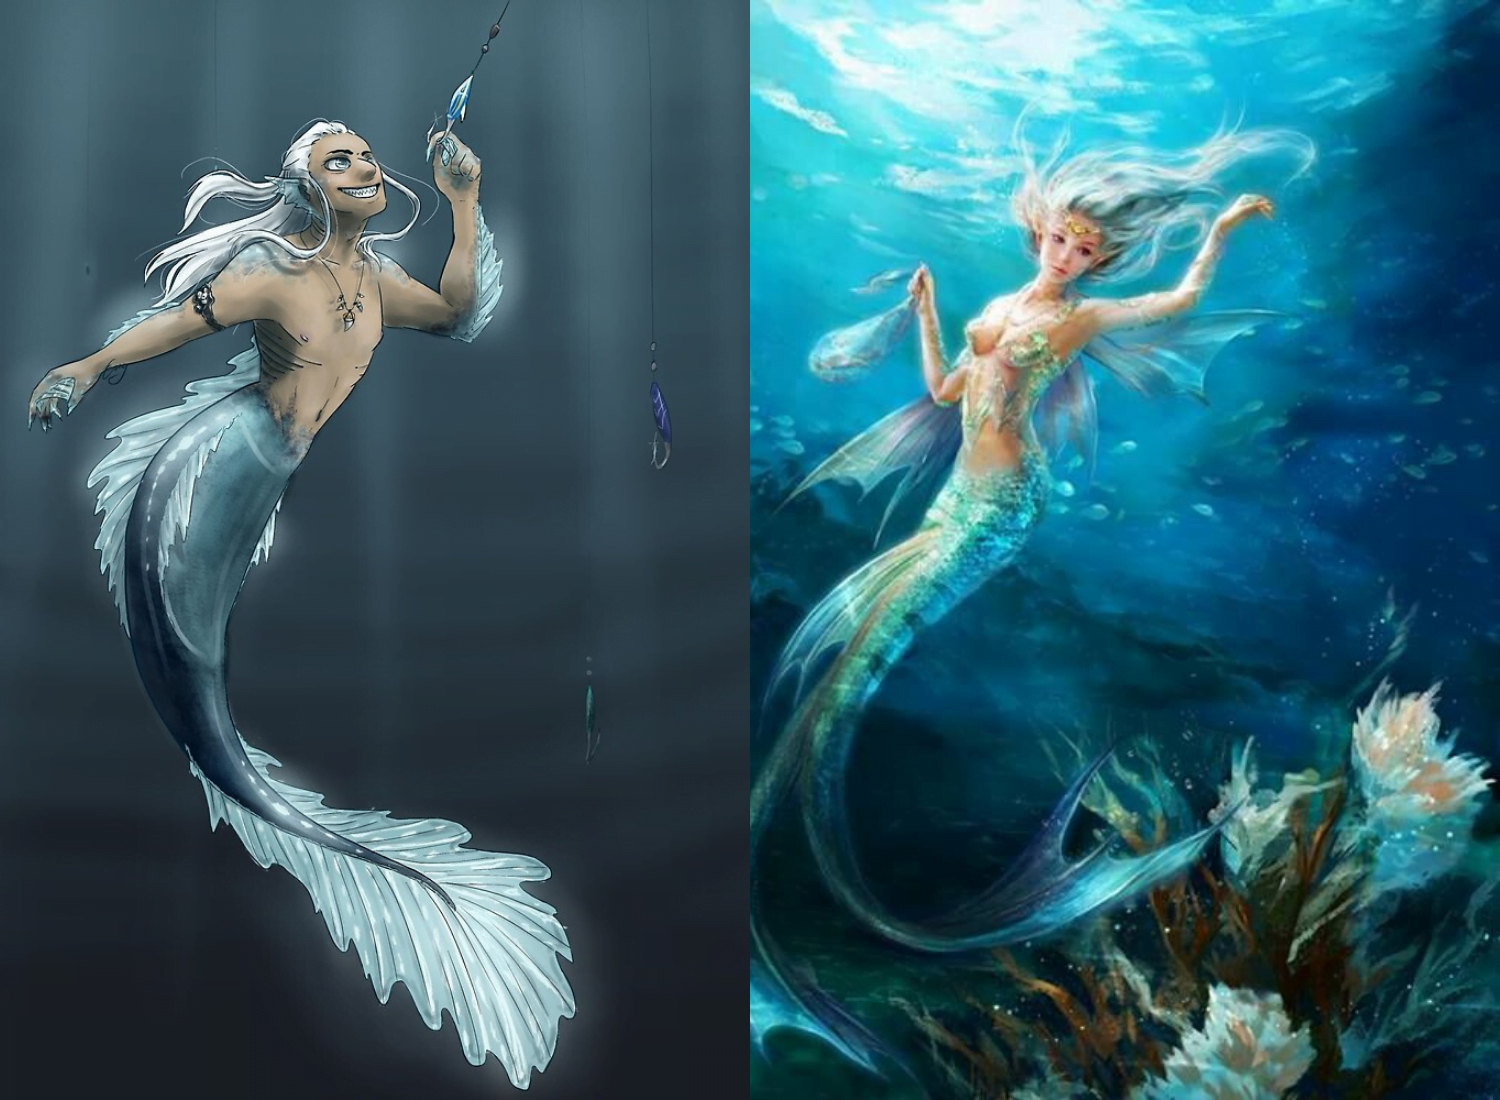 Mermaids: Creatures of Fantasy or a Hidden Reality?